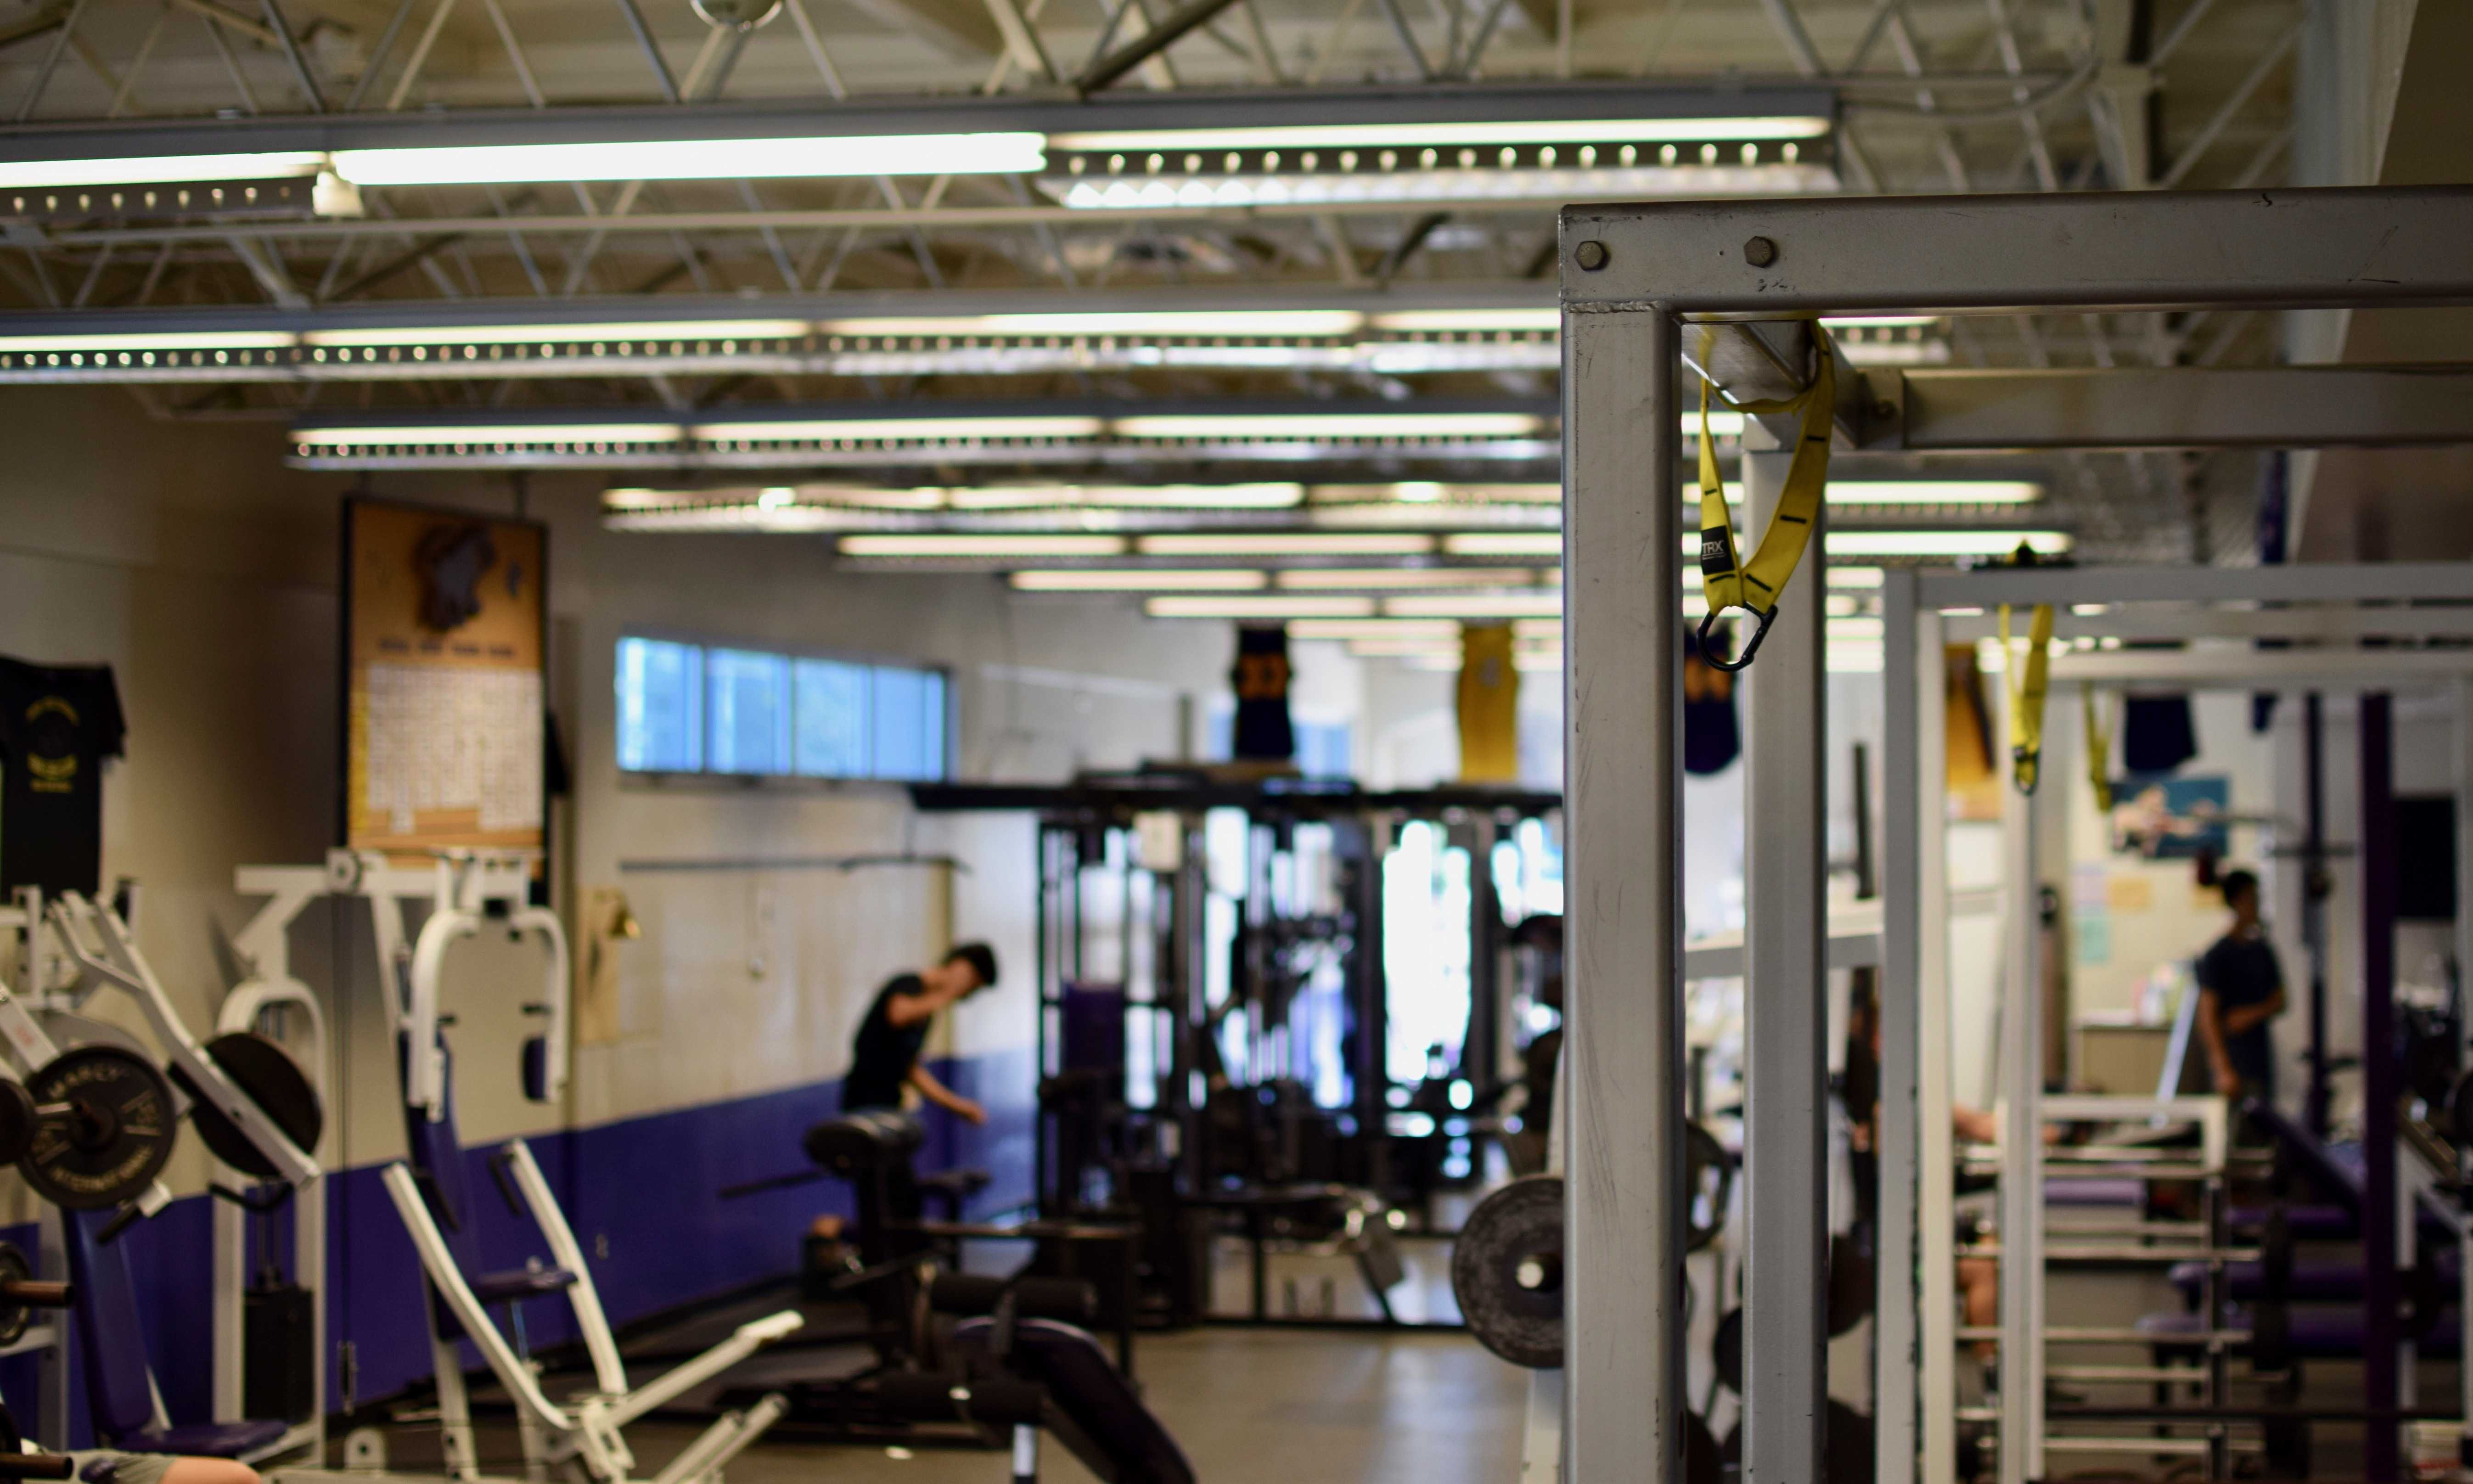 The MVHS weight room is largely empty after school. Students, regardless of their participation on MVHS athletic teams, can use the weight room after school. Photo by Om Khandekar.